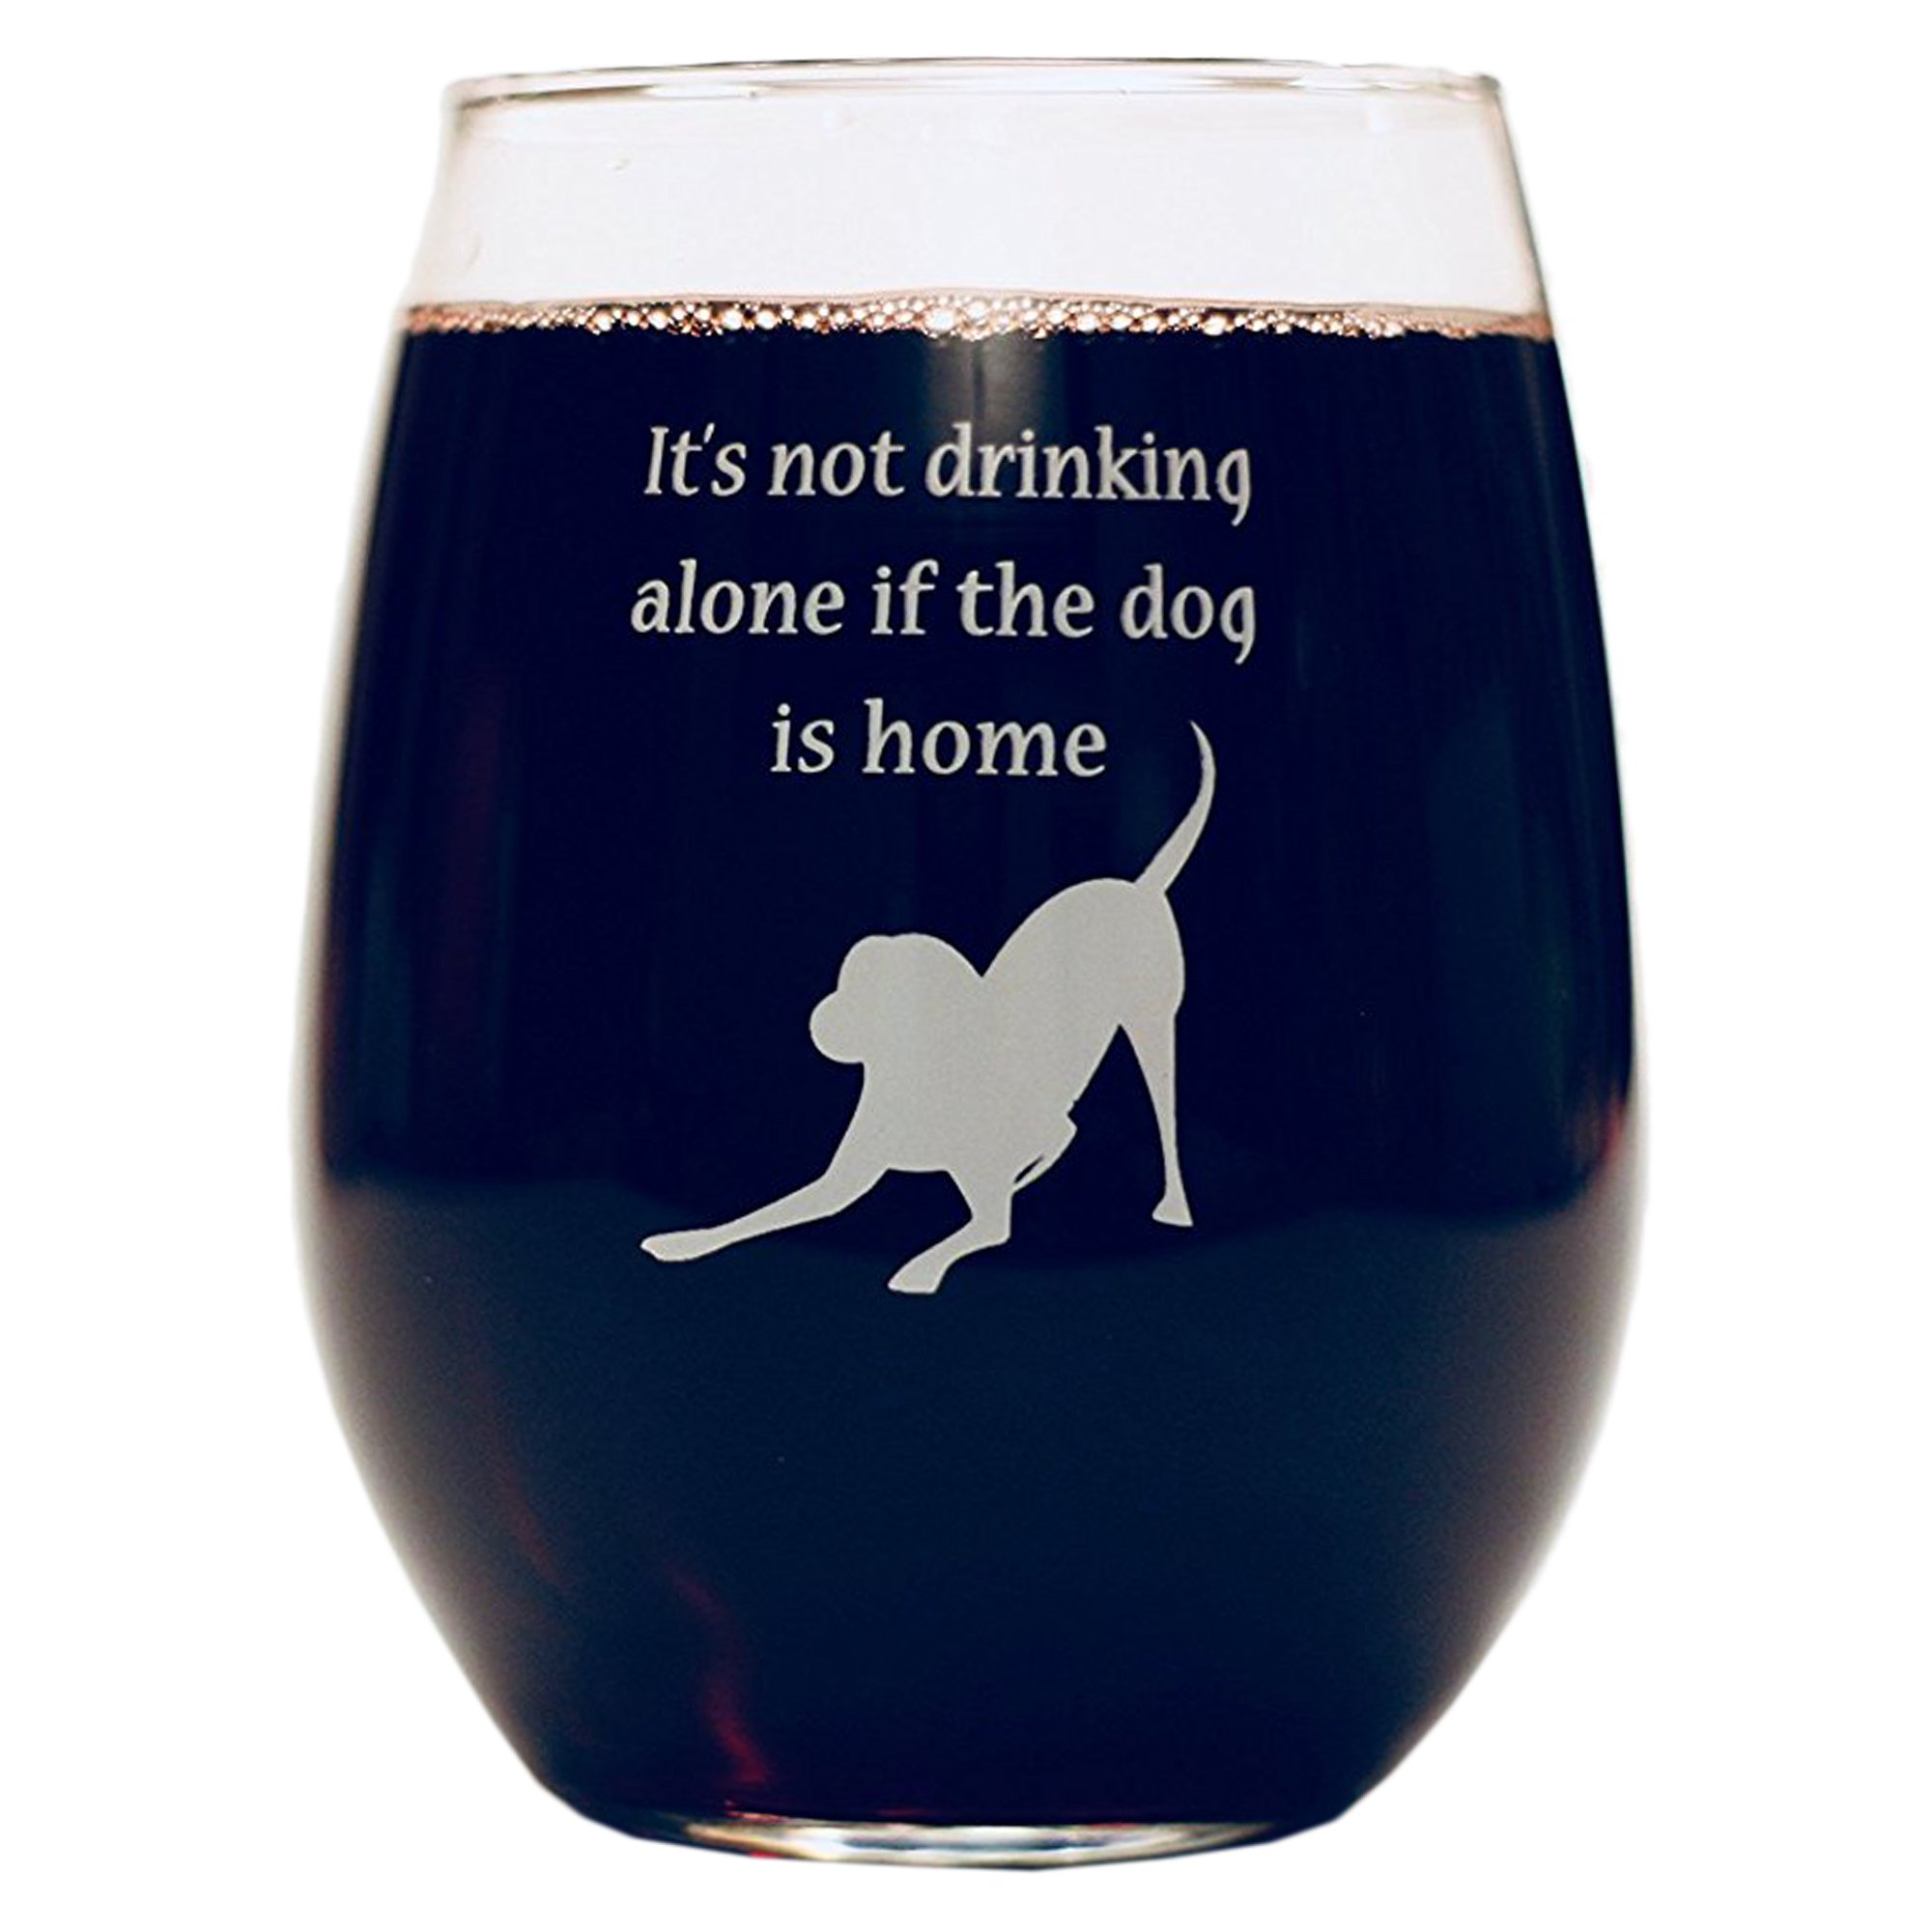 Funny Wine Glass It's Not Drinking Alone if the Dog is Home Father's Day GIft Cute Novelty Stemless Dog Wine Glasses - 15 oz. Dog Lover Gifts Fun Funny Gift Teacher